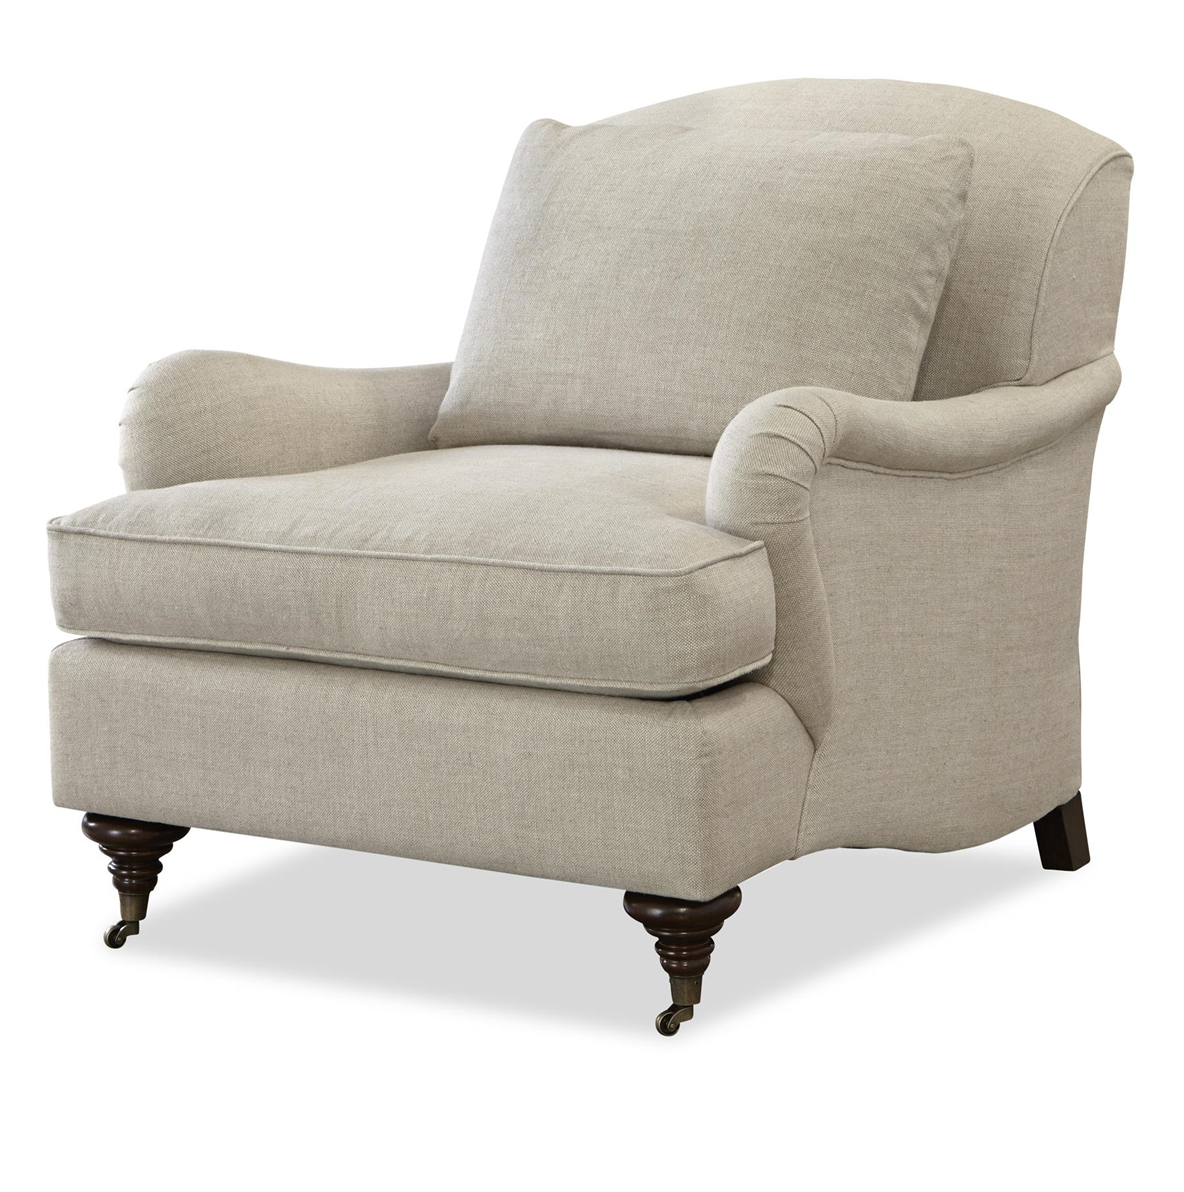 Sedia Girevole English Churchill Linen Upholstered English Rolled Arm Chair Sofas And